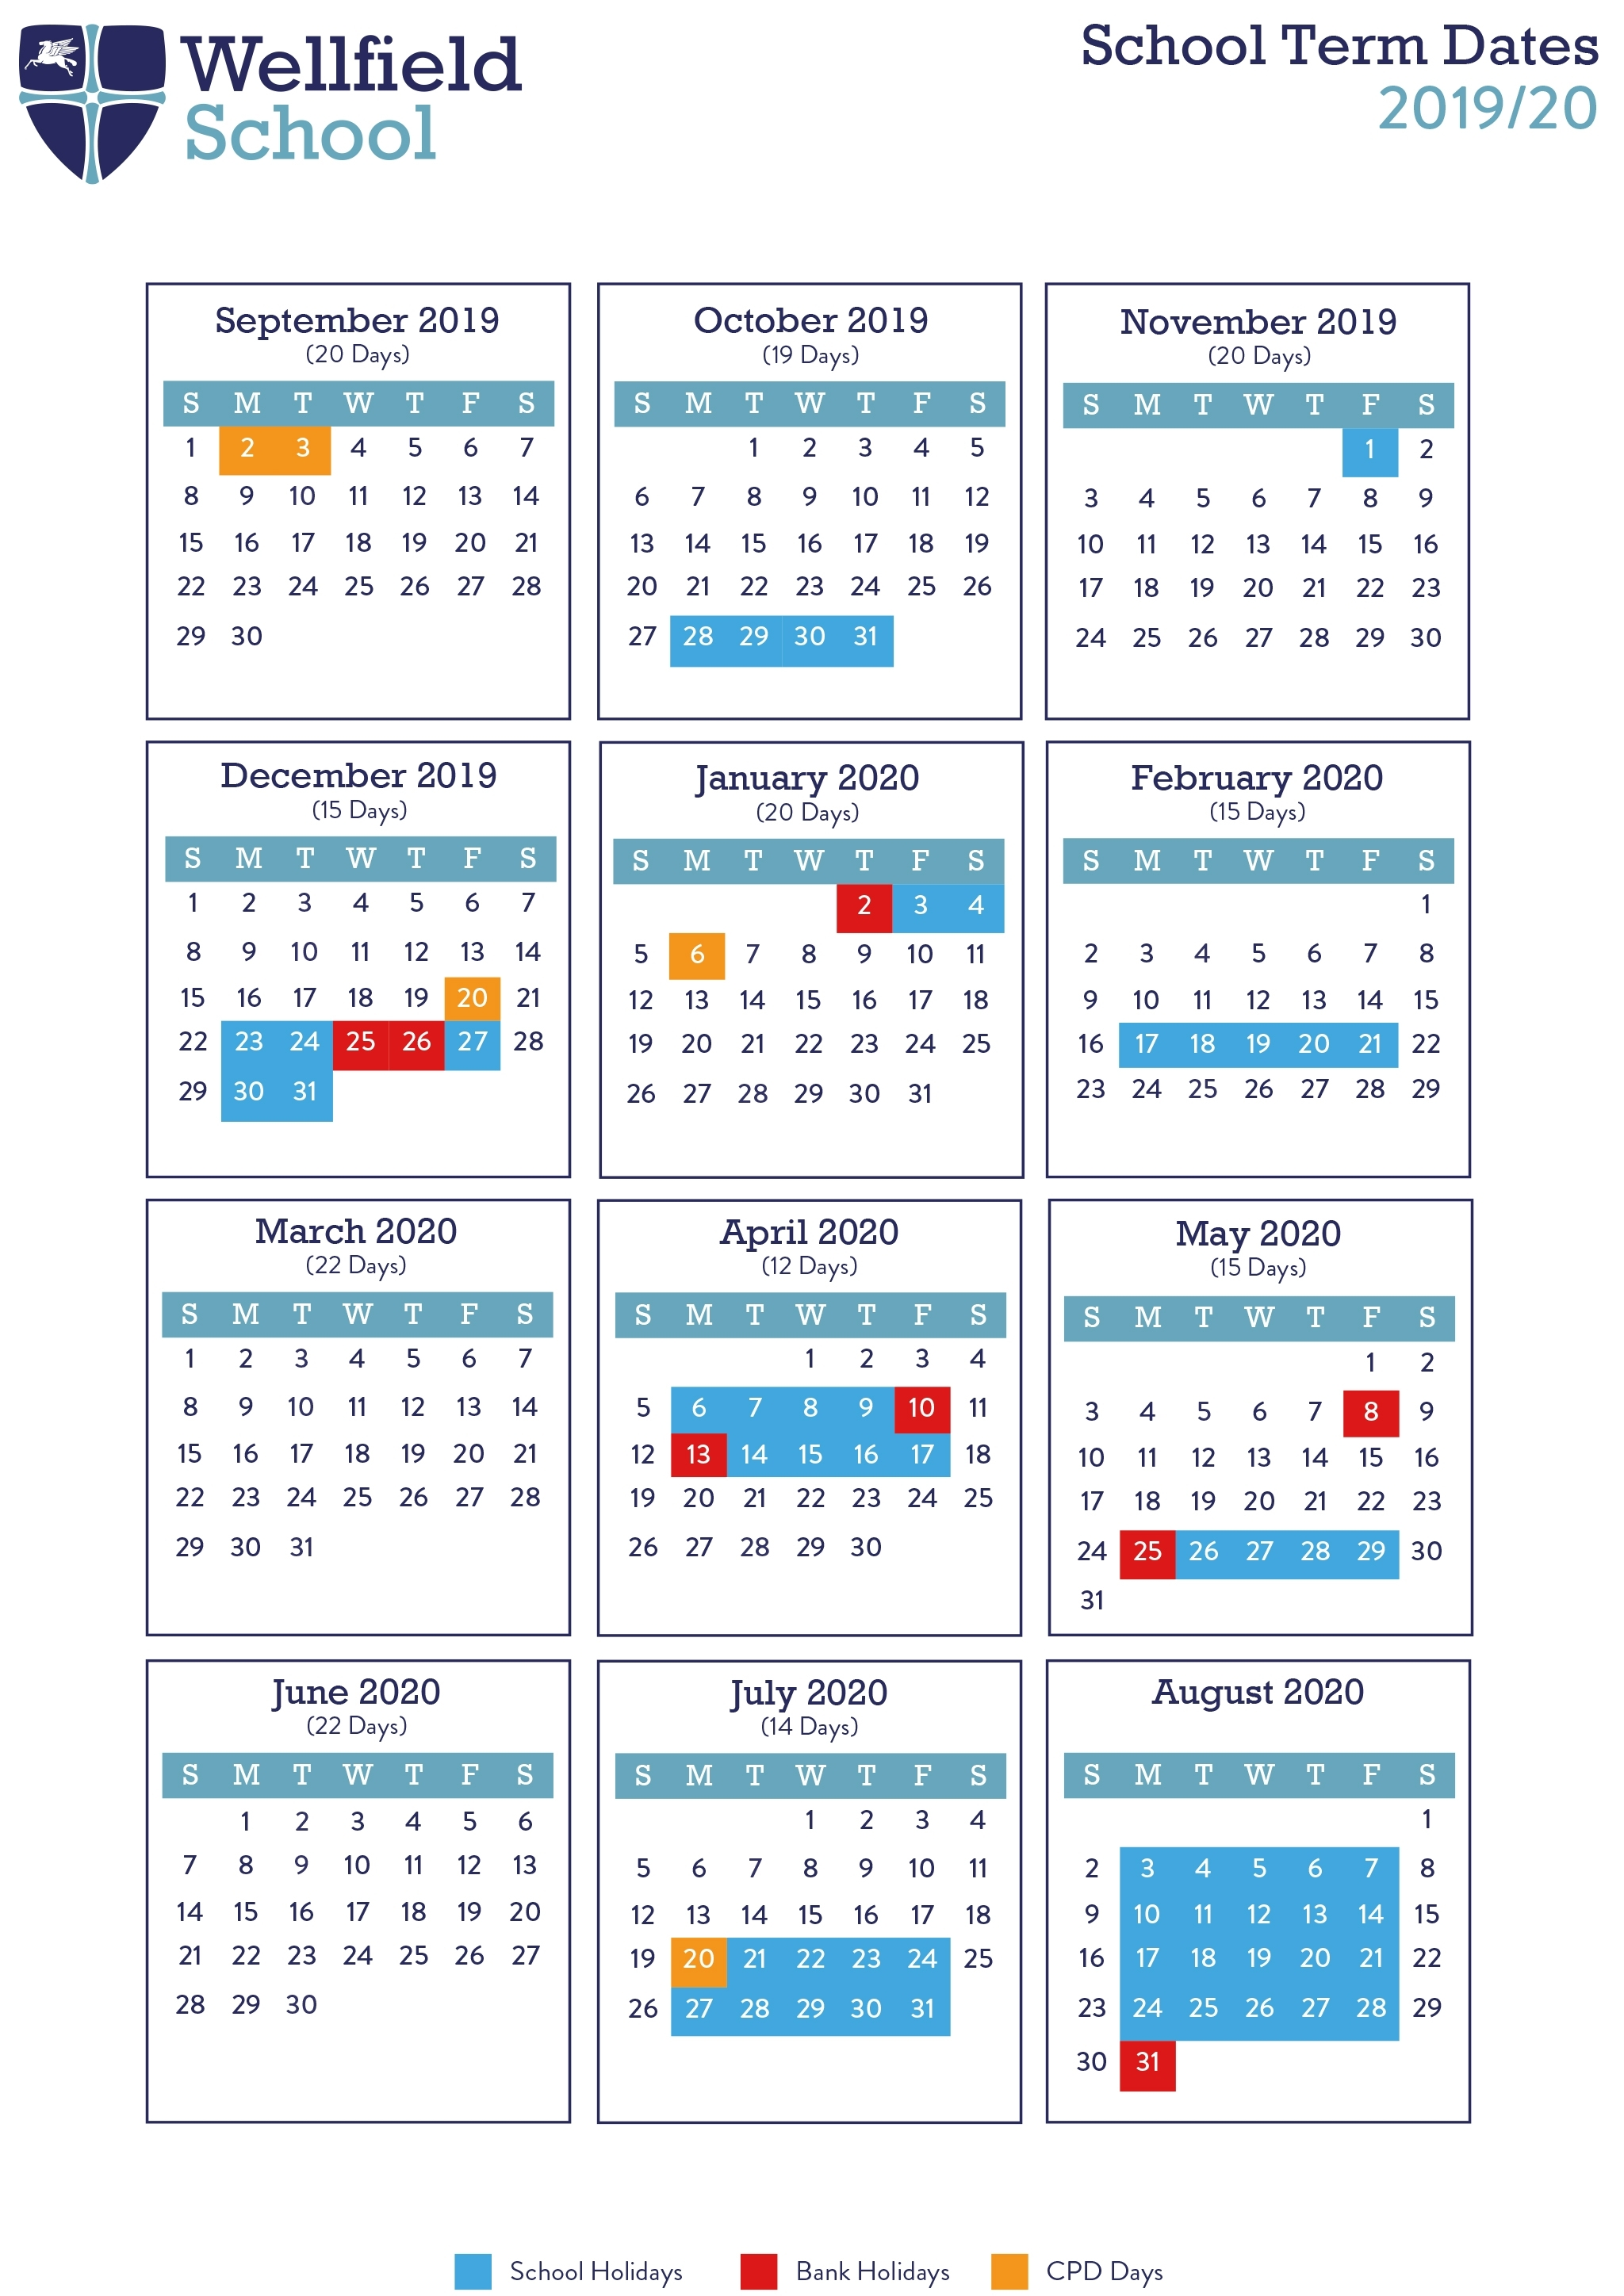 Term Dates 2019/20 - Wellfield School with Special Days Of The Year 2020